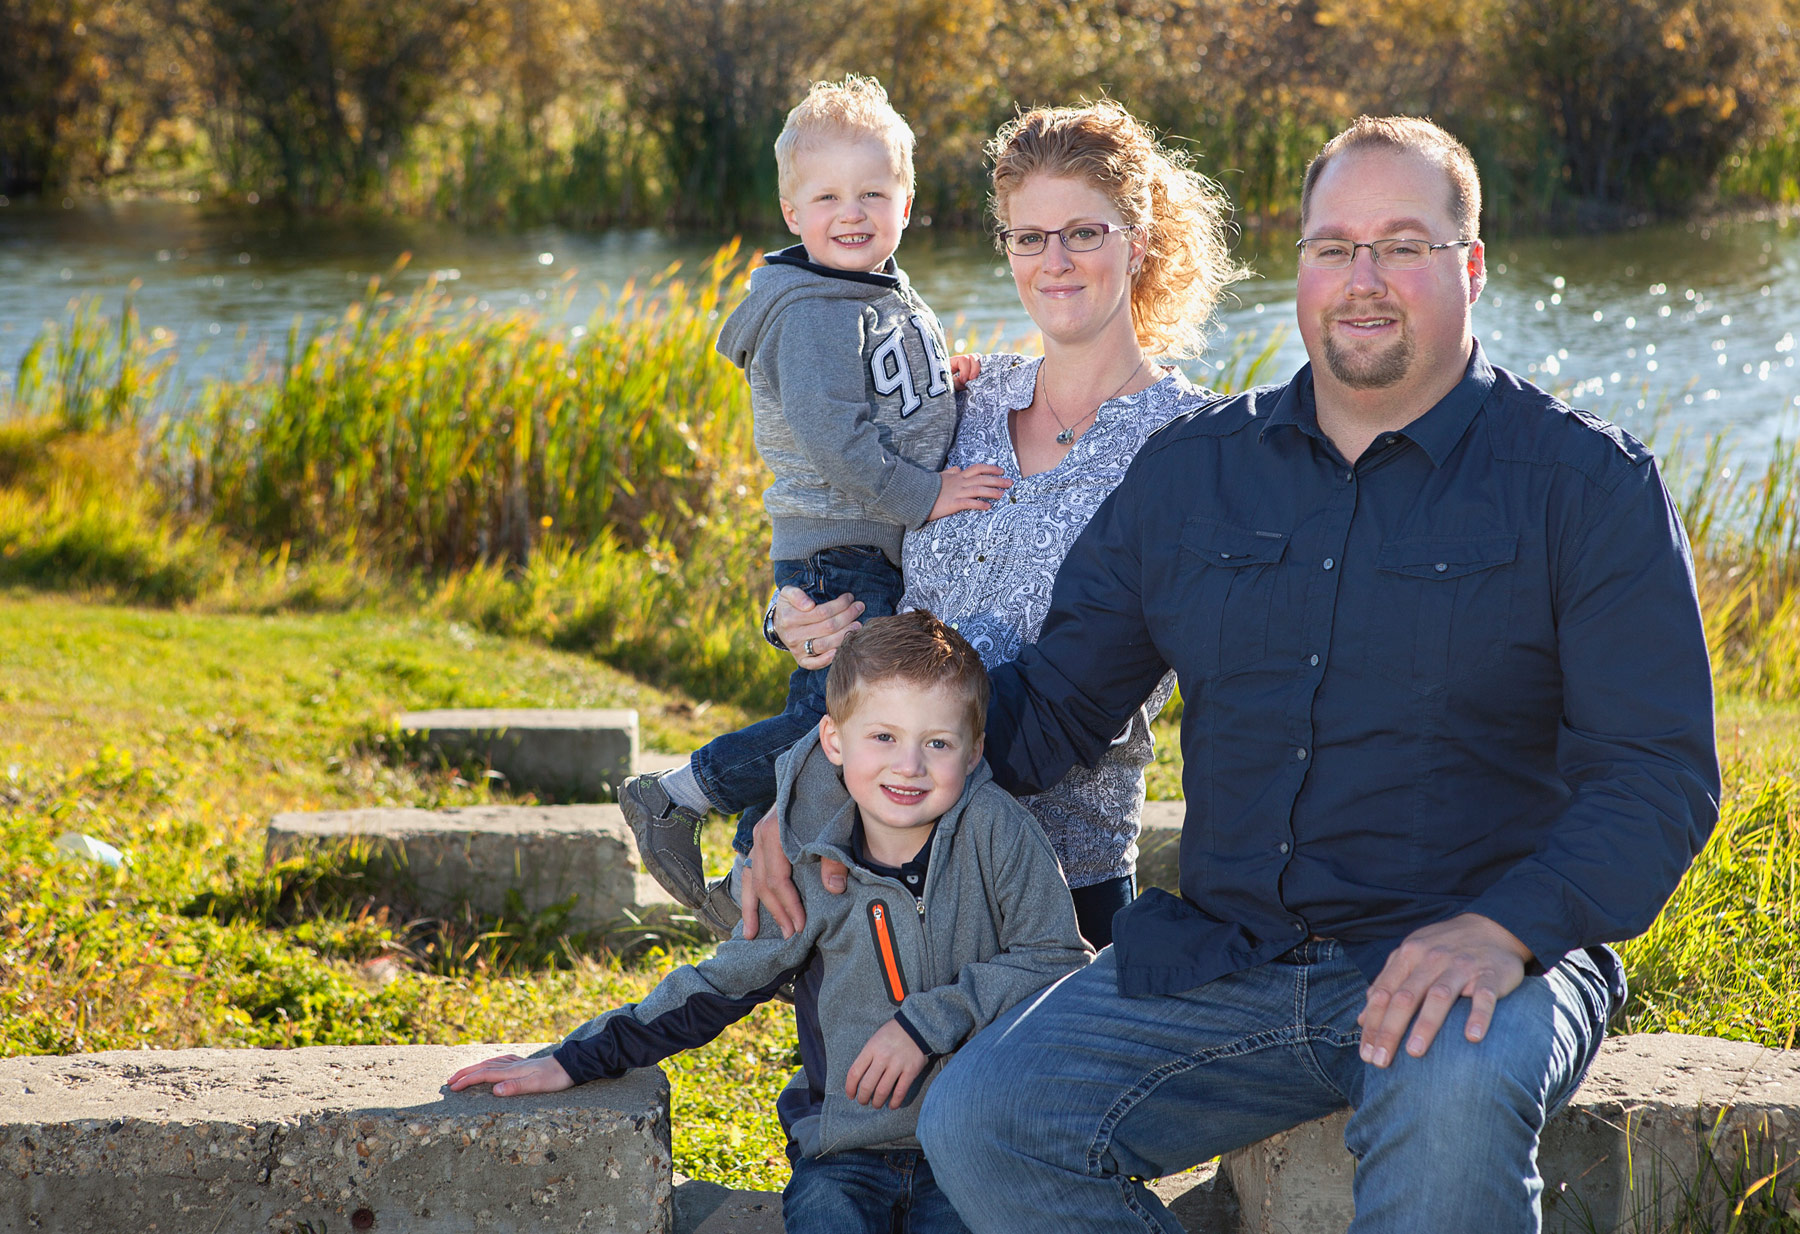 steven-vanneiuwkerk-for-beaumont-council-election-family-2017.jpg